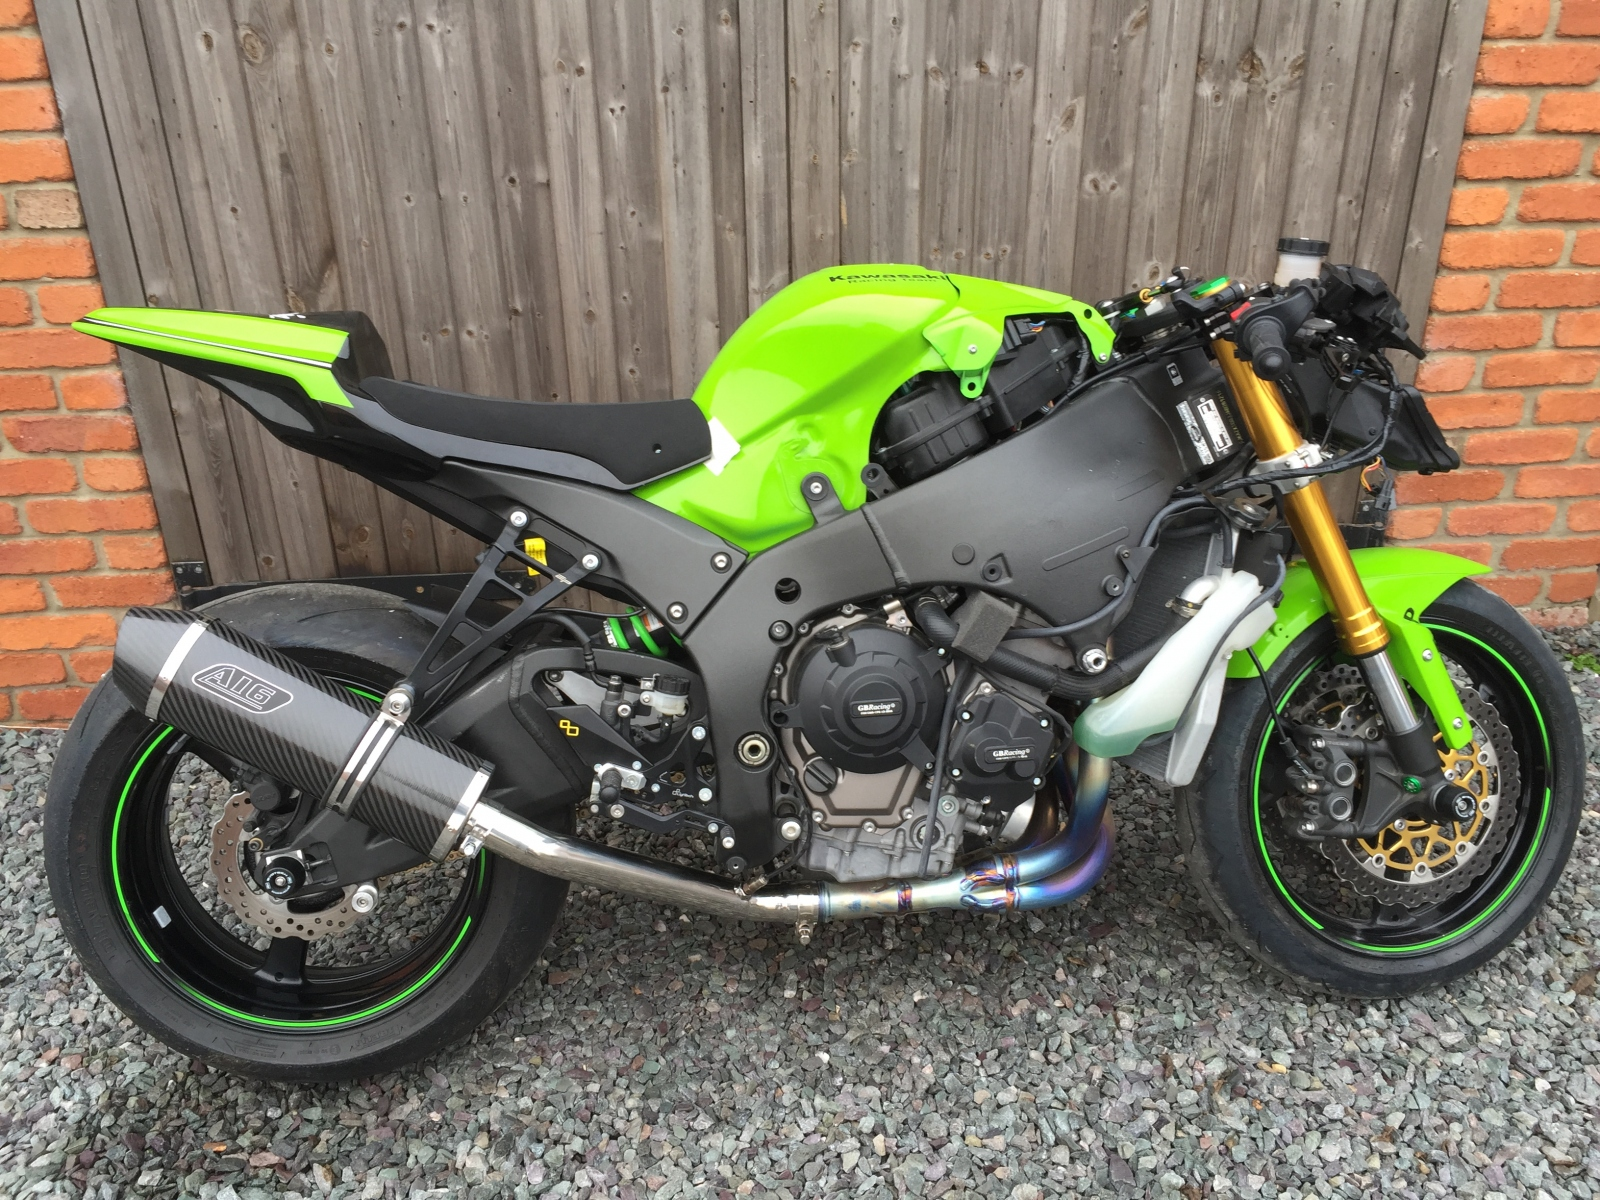 """Kawasaki ZX10R 2011-2015<p>A16 Road Legal Carbon Exhaust with Carbon Cap Outlet</p><br><a href=""""https://a16roadnracesupplies.co.uk/product/a16-kawasaki-exhausts/"""">Click here to Spec your A16 Kawasaki Exhaust now!</a>"""